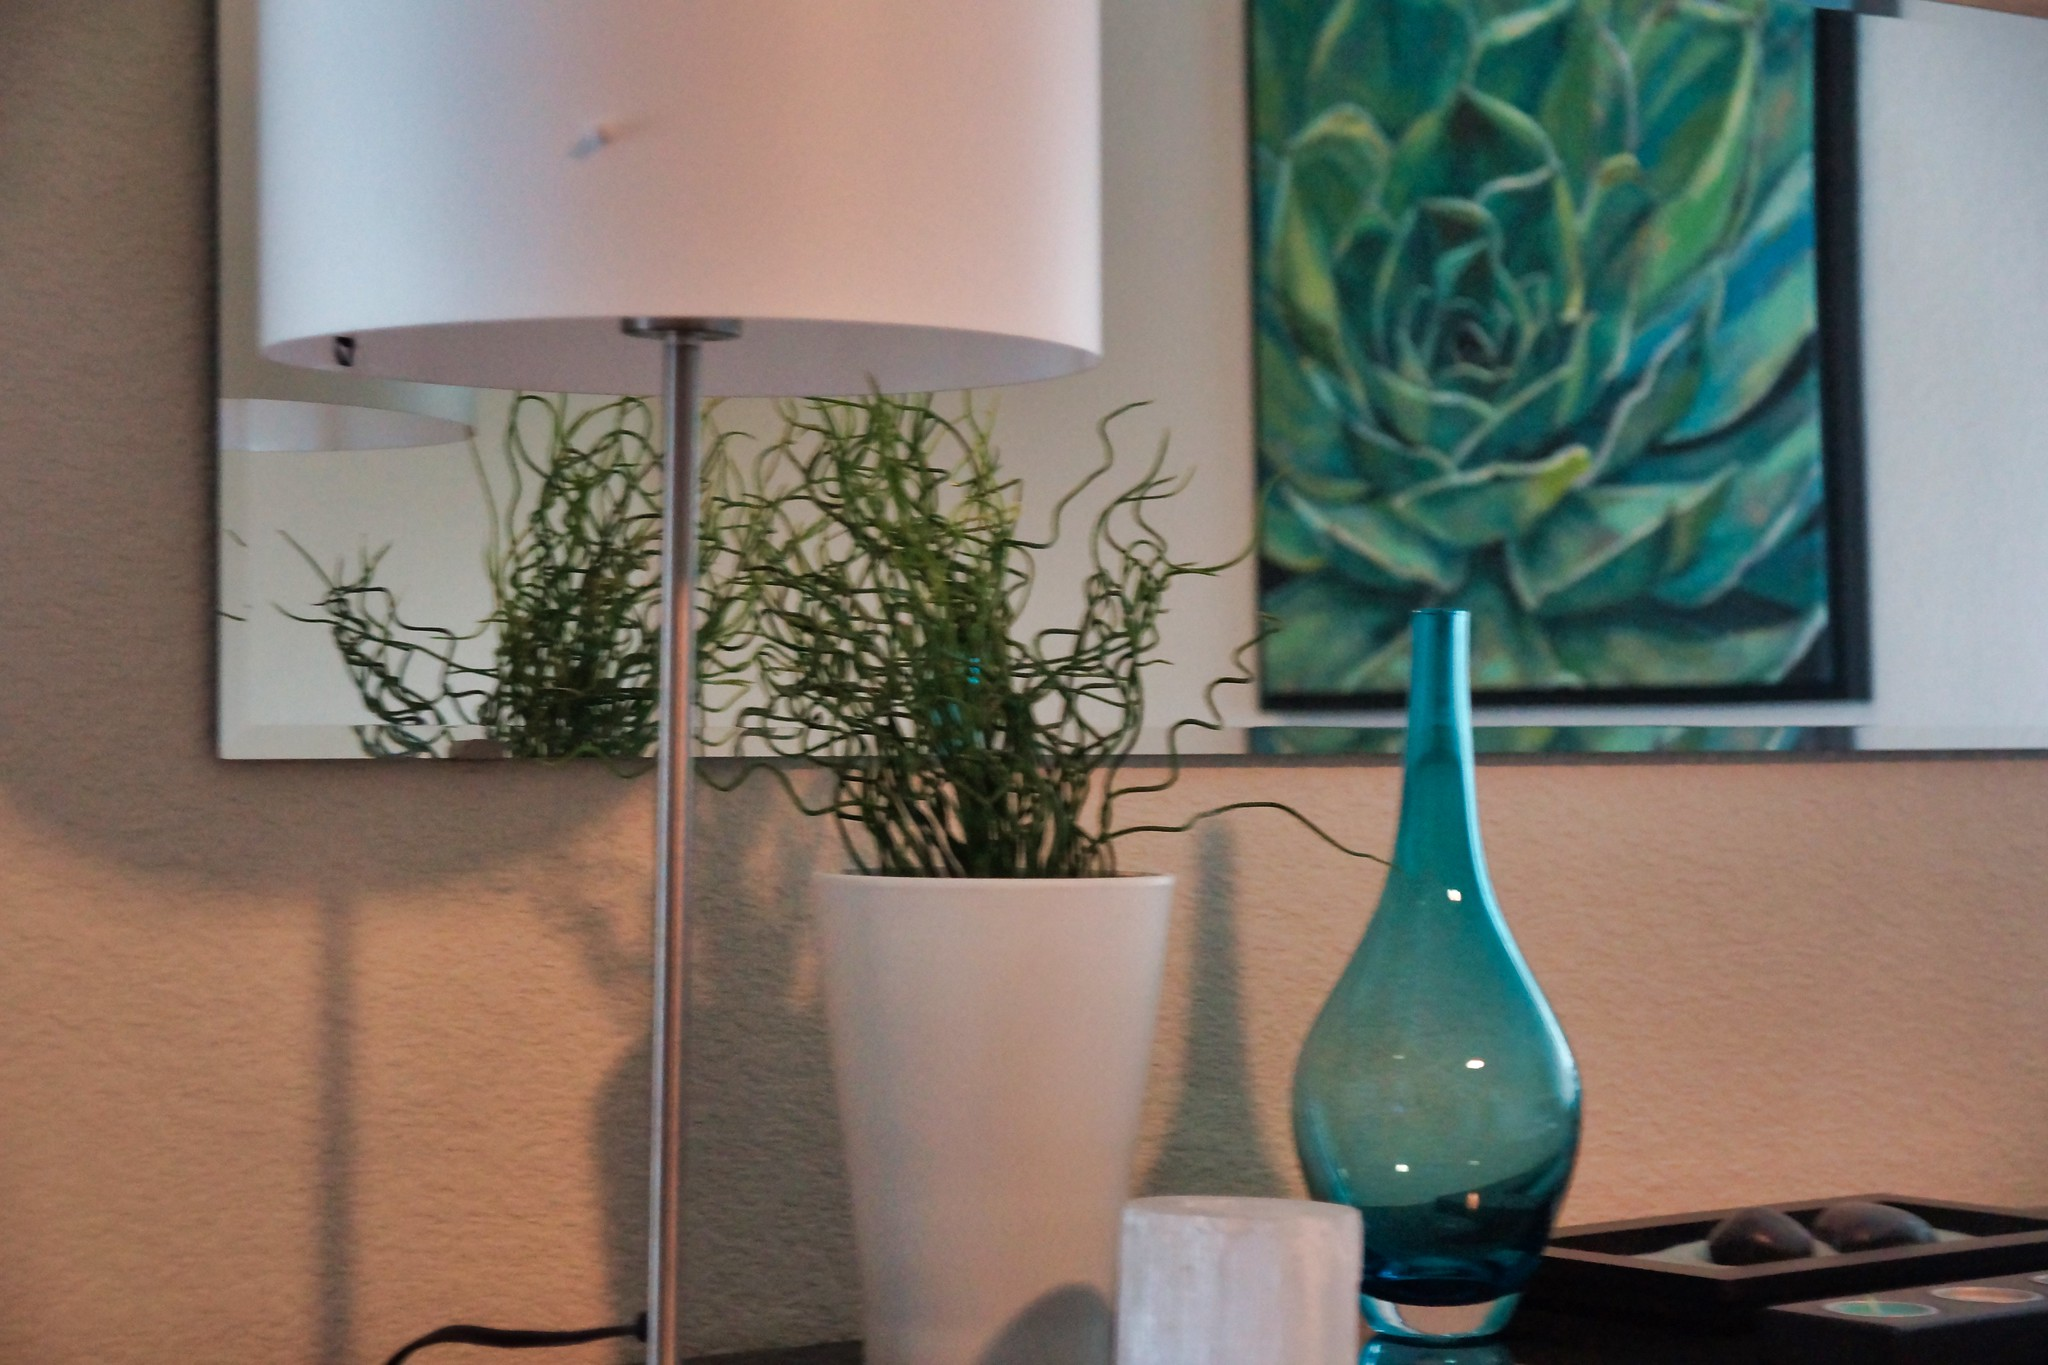 2019-02-13 - Indoor Photography - Decorations